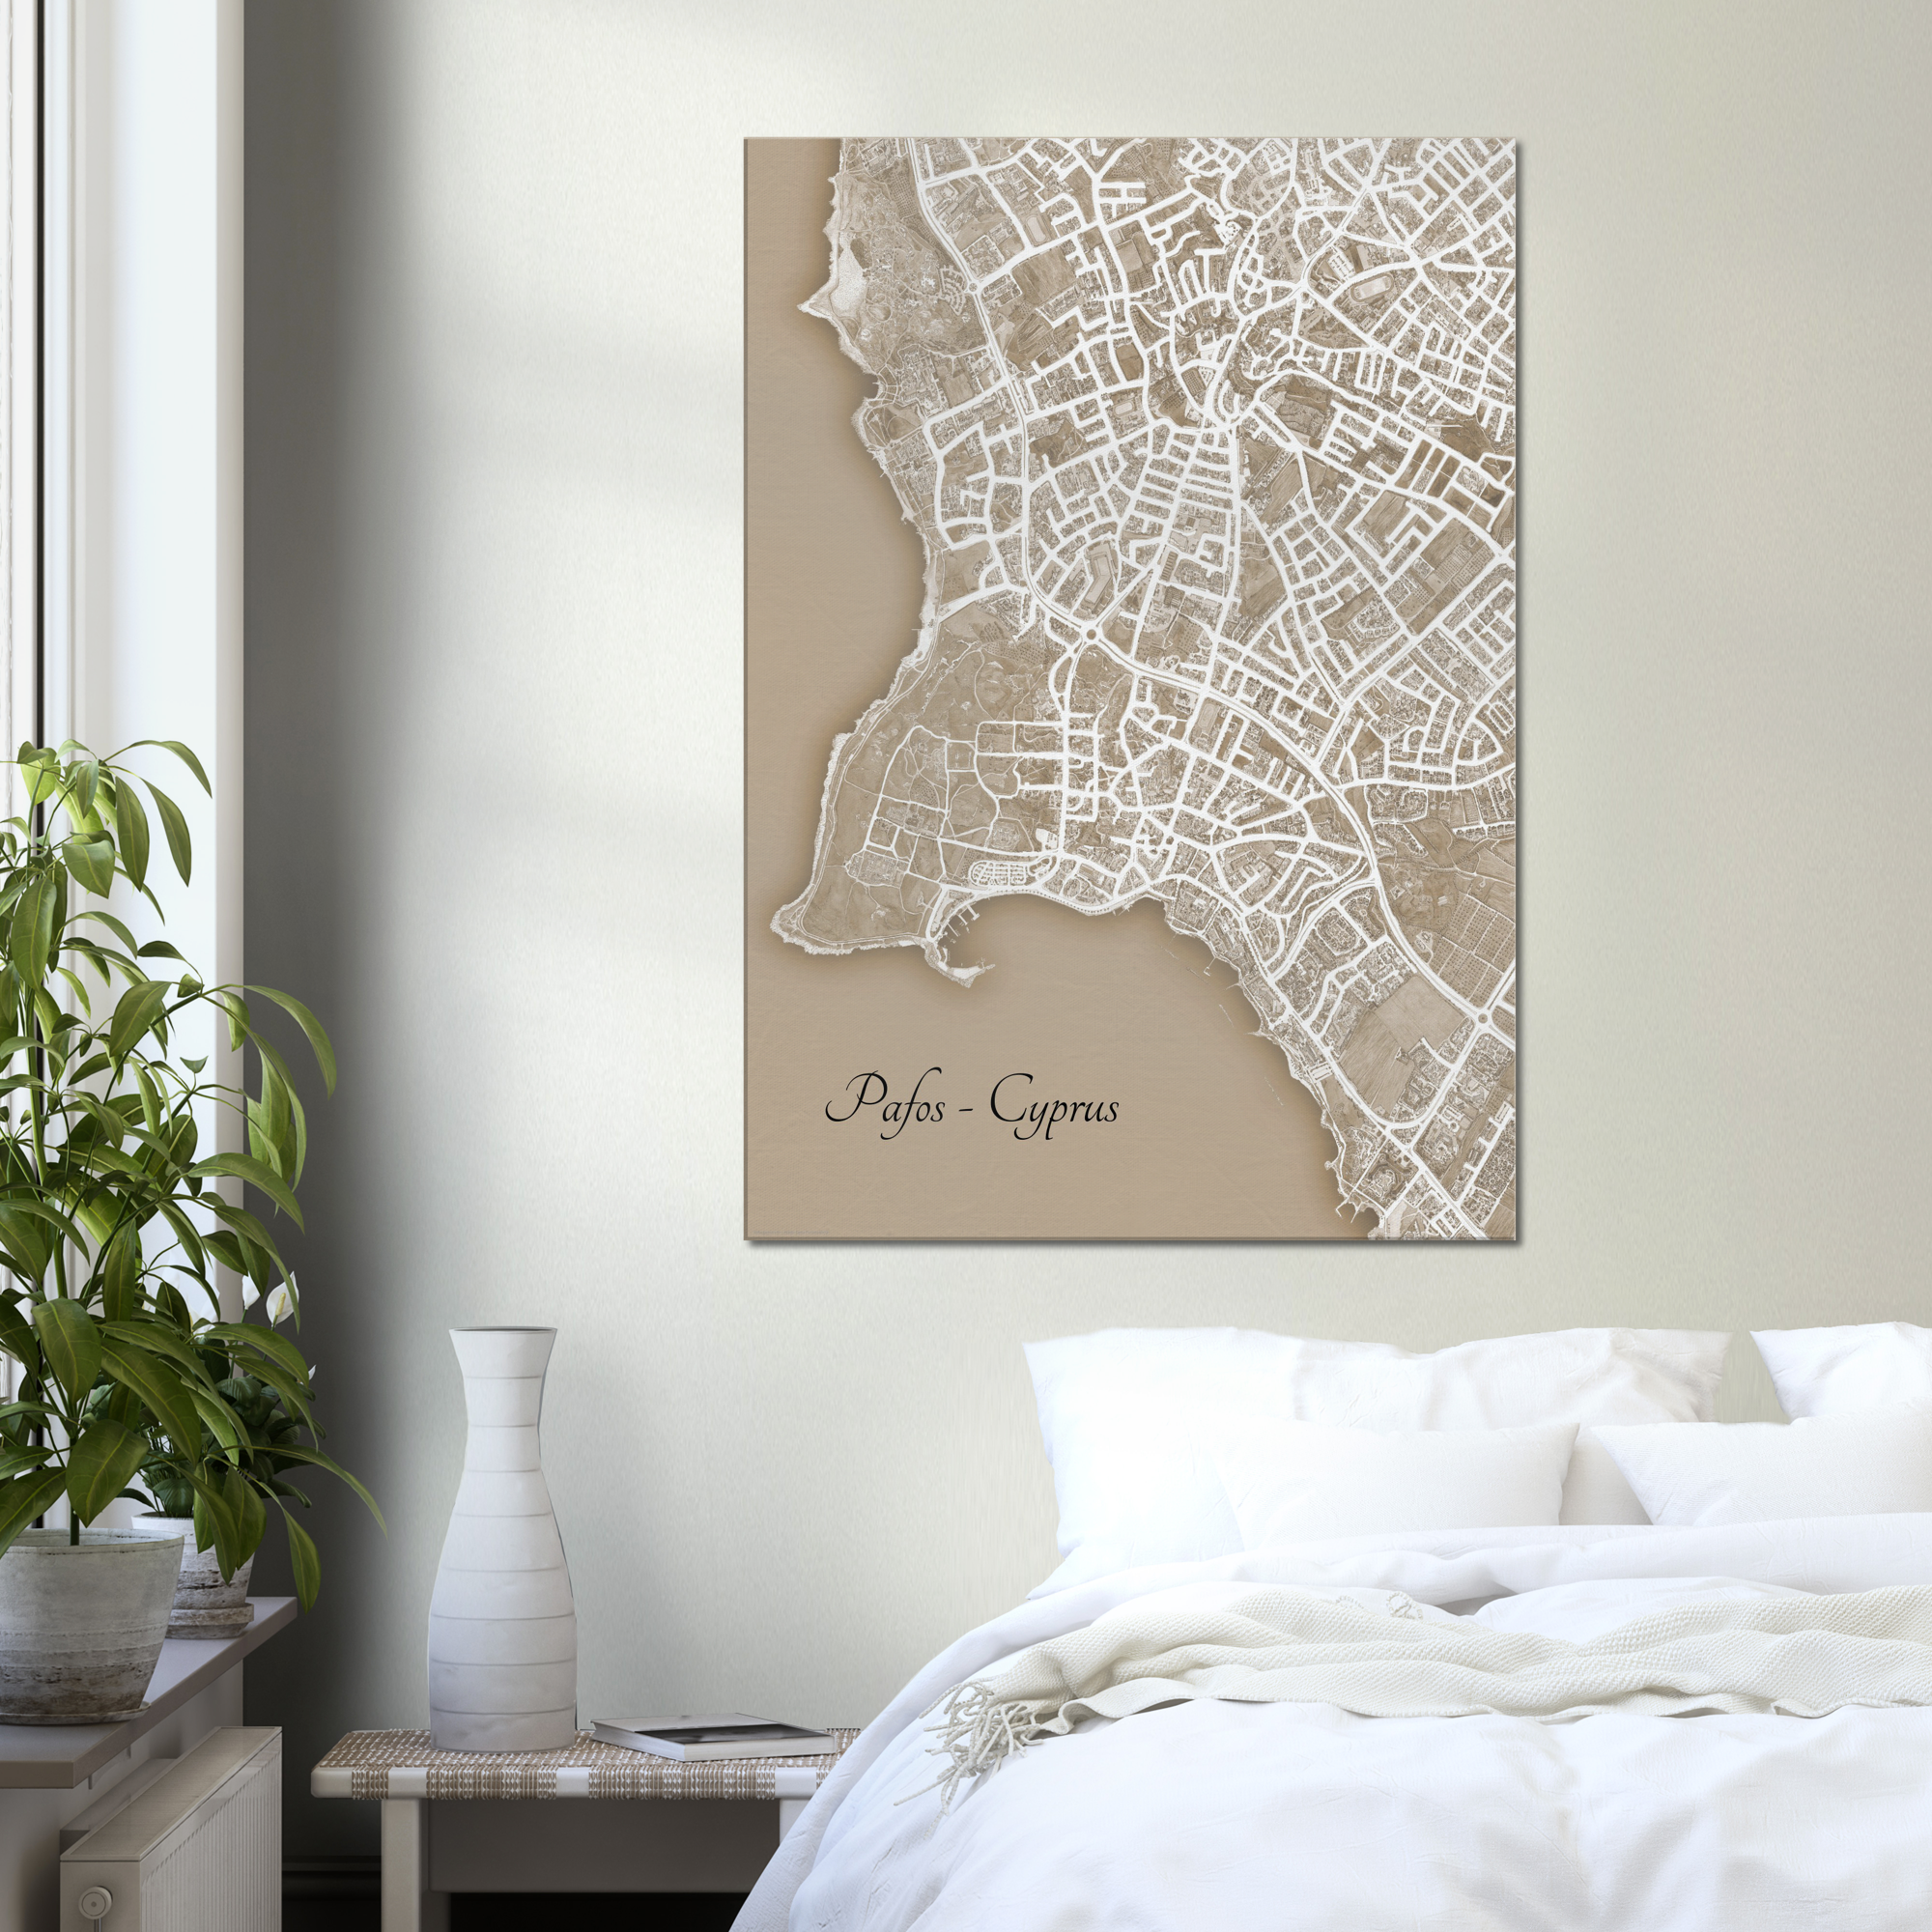 Pafos Town, Cyprus - Sepia Canvas Print - Framed